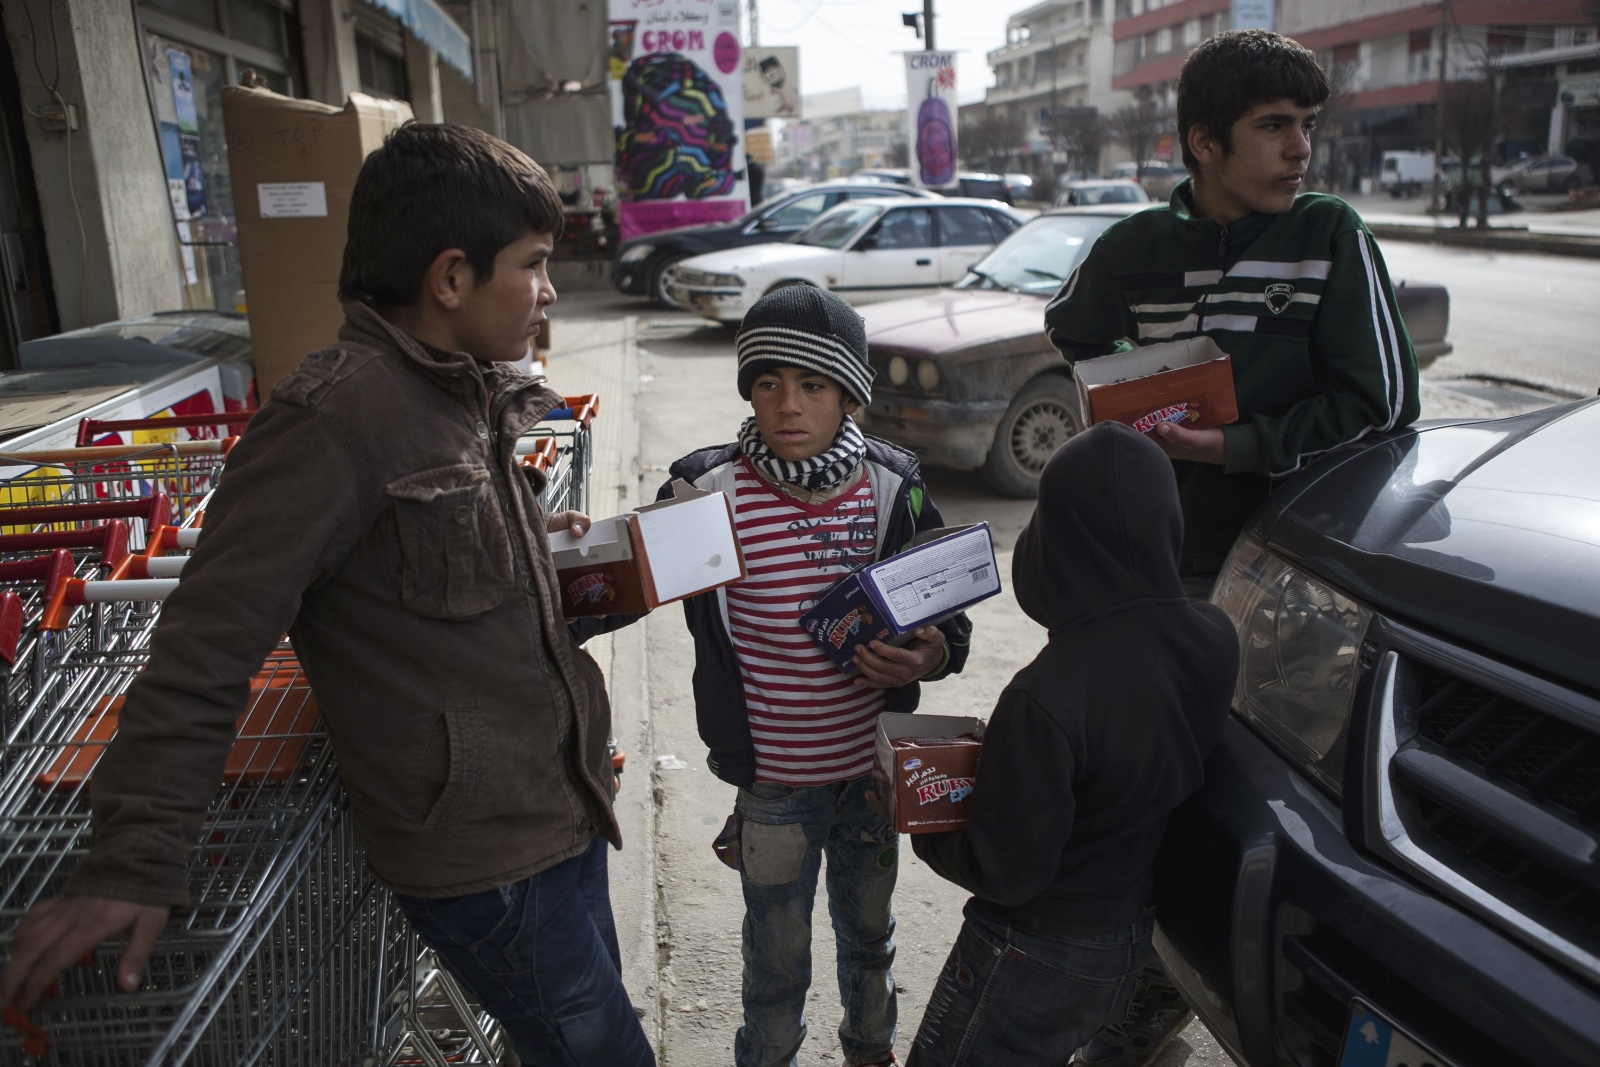 Khaled (left), 12, Mahmut (center), 8, and Ahmed (right), 15, brothers and refugees from Homs, wait for customers to come out of a grocery story while selling biscuits in the Bekaa Valley while selling biscuits. (Christopher Lee/GroundTruth)